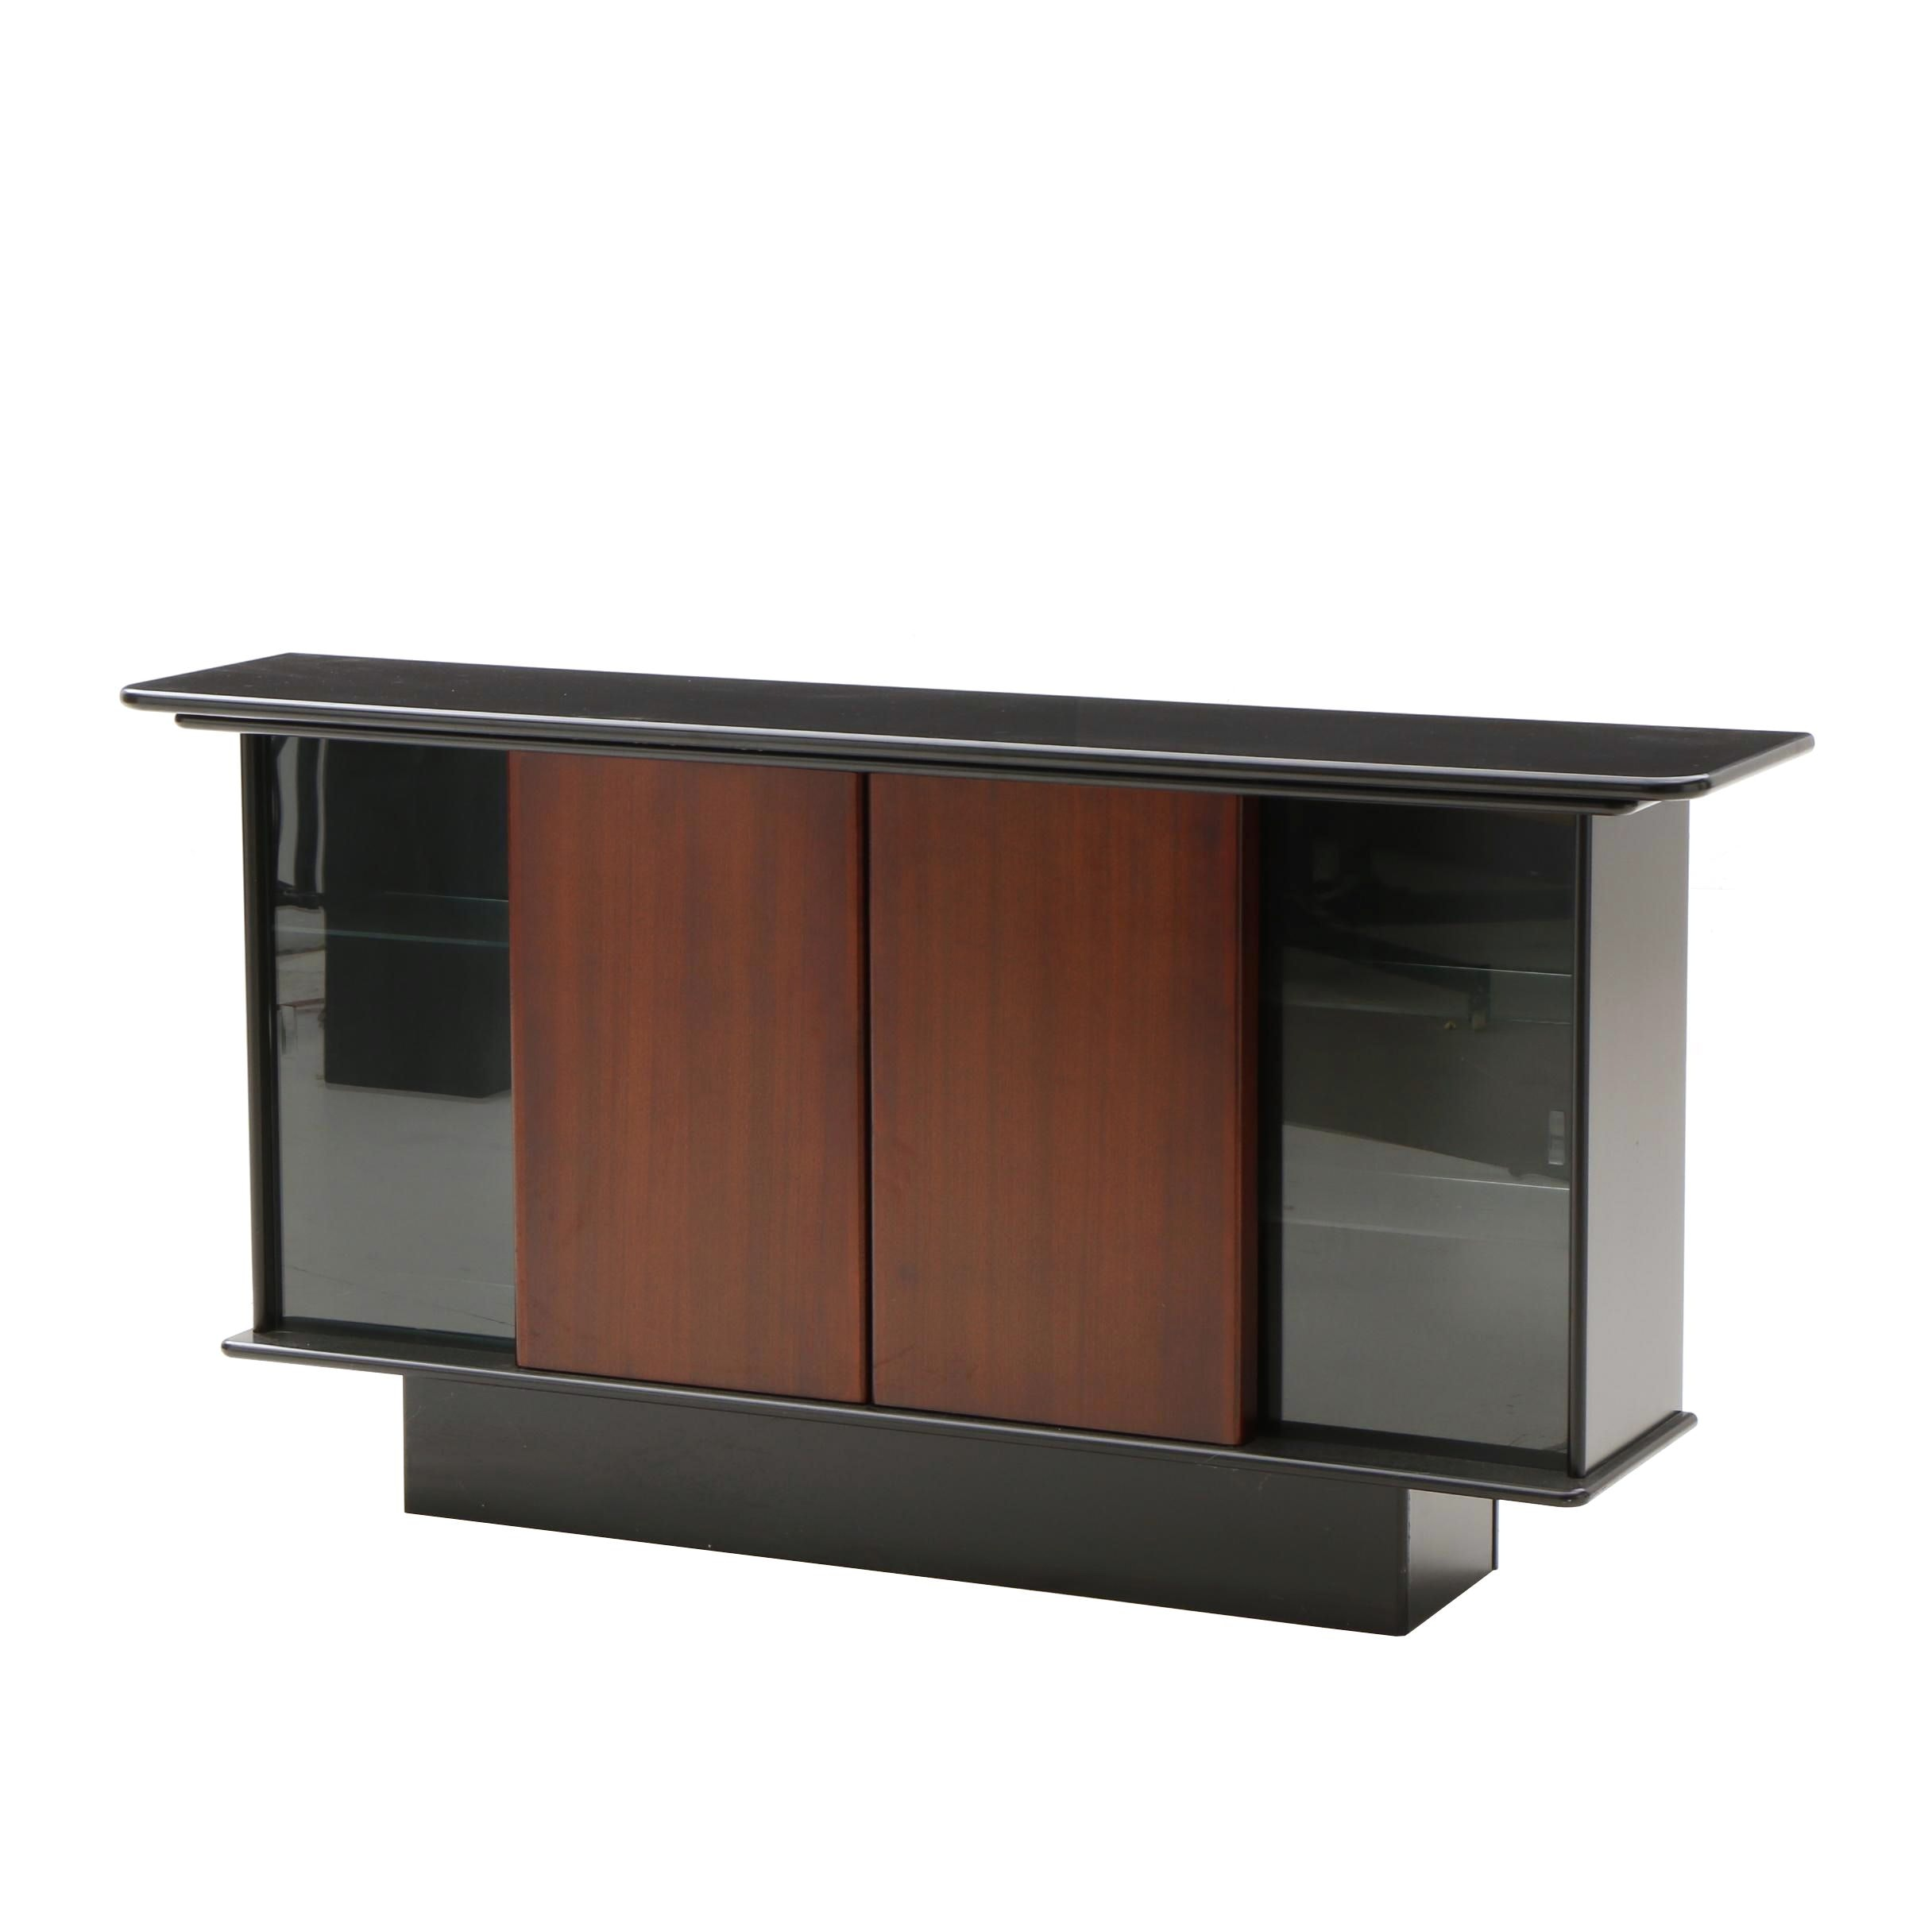 Contemporary Sideboard in Black